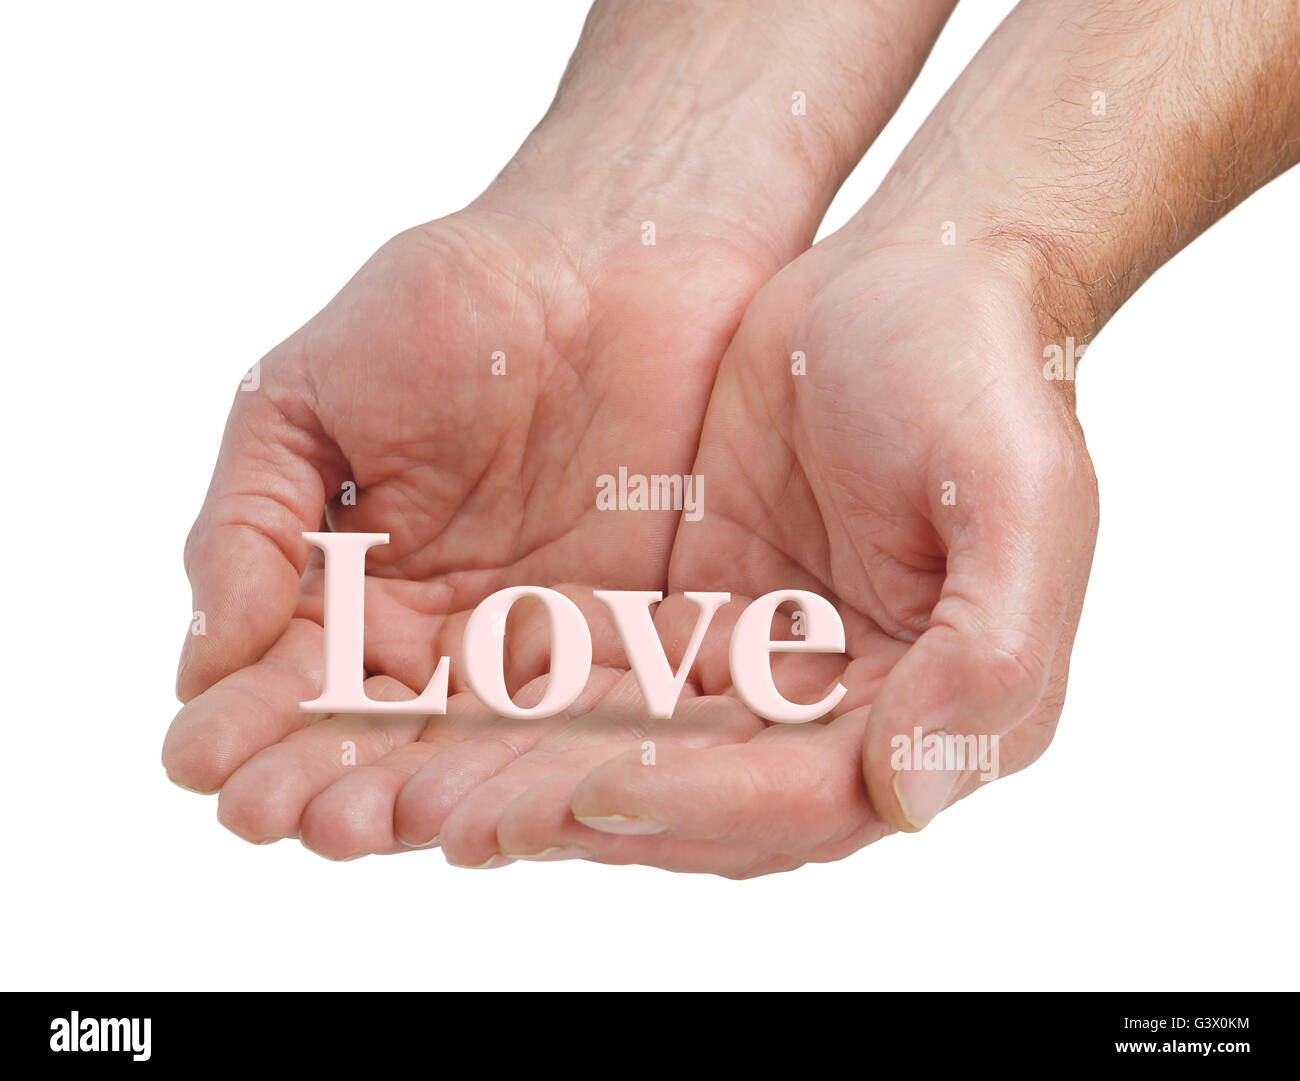 Offering pure love - male cupped hands offering the word LOVE floating just above his fingers, isolated on a white - Stock Image